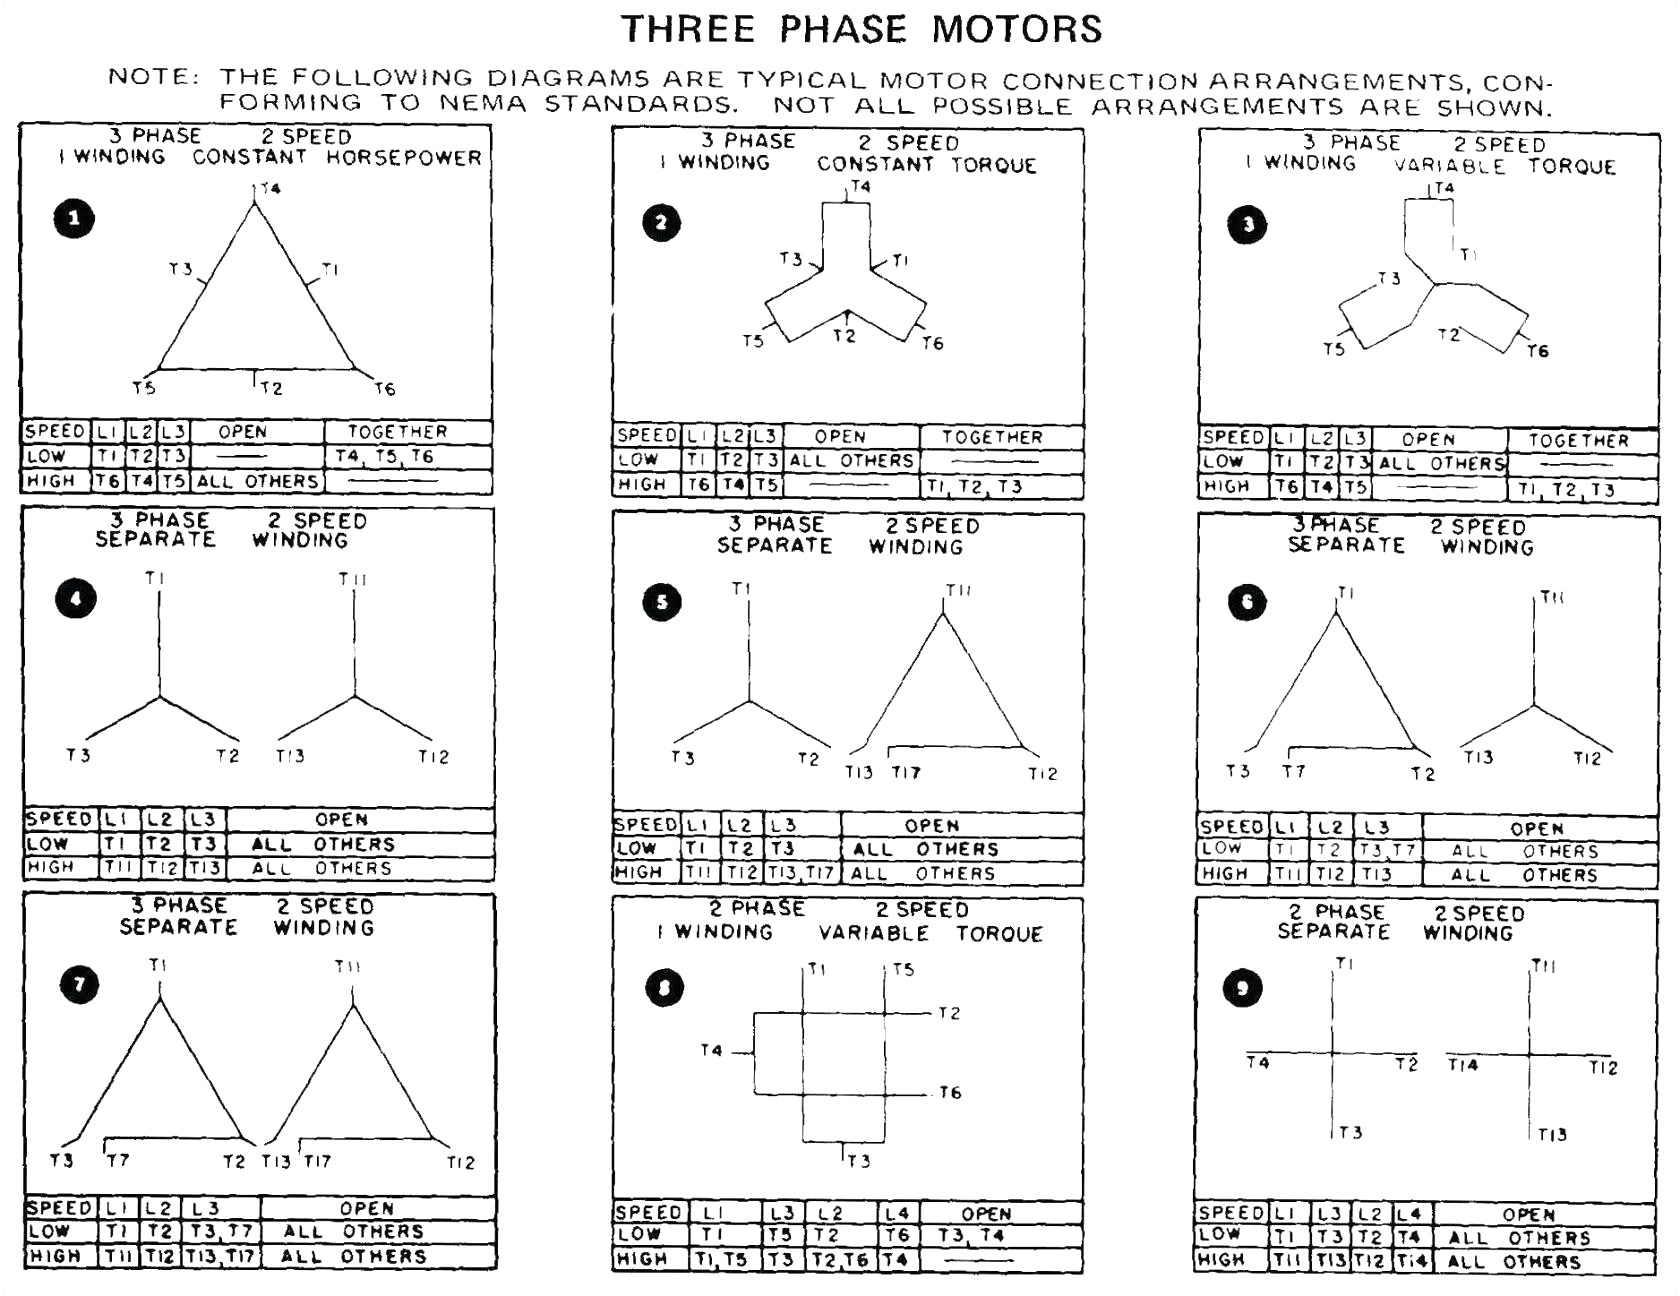 3 Phase Motor Wiring Diagram 9 Wire Iec Motor Leads Wiring Diagram Wiring Diagram Sys